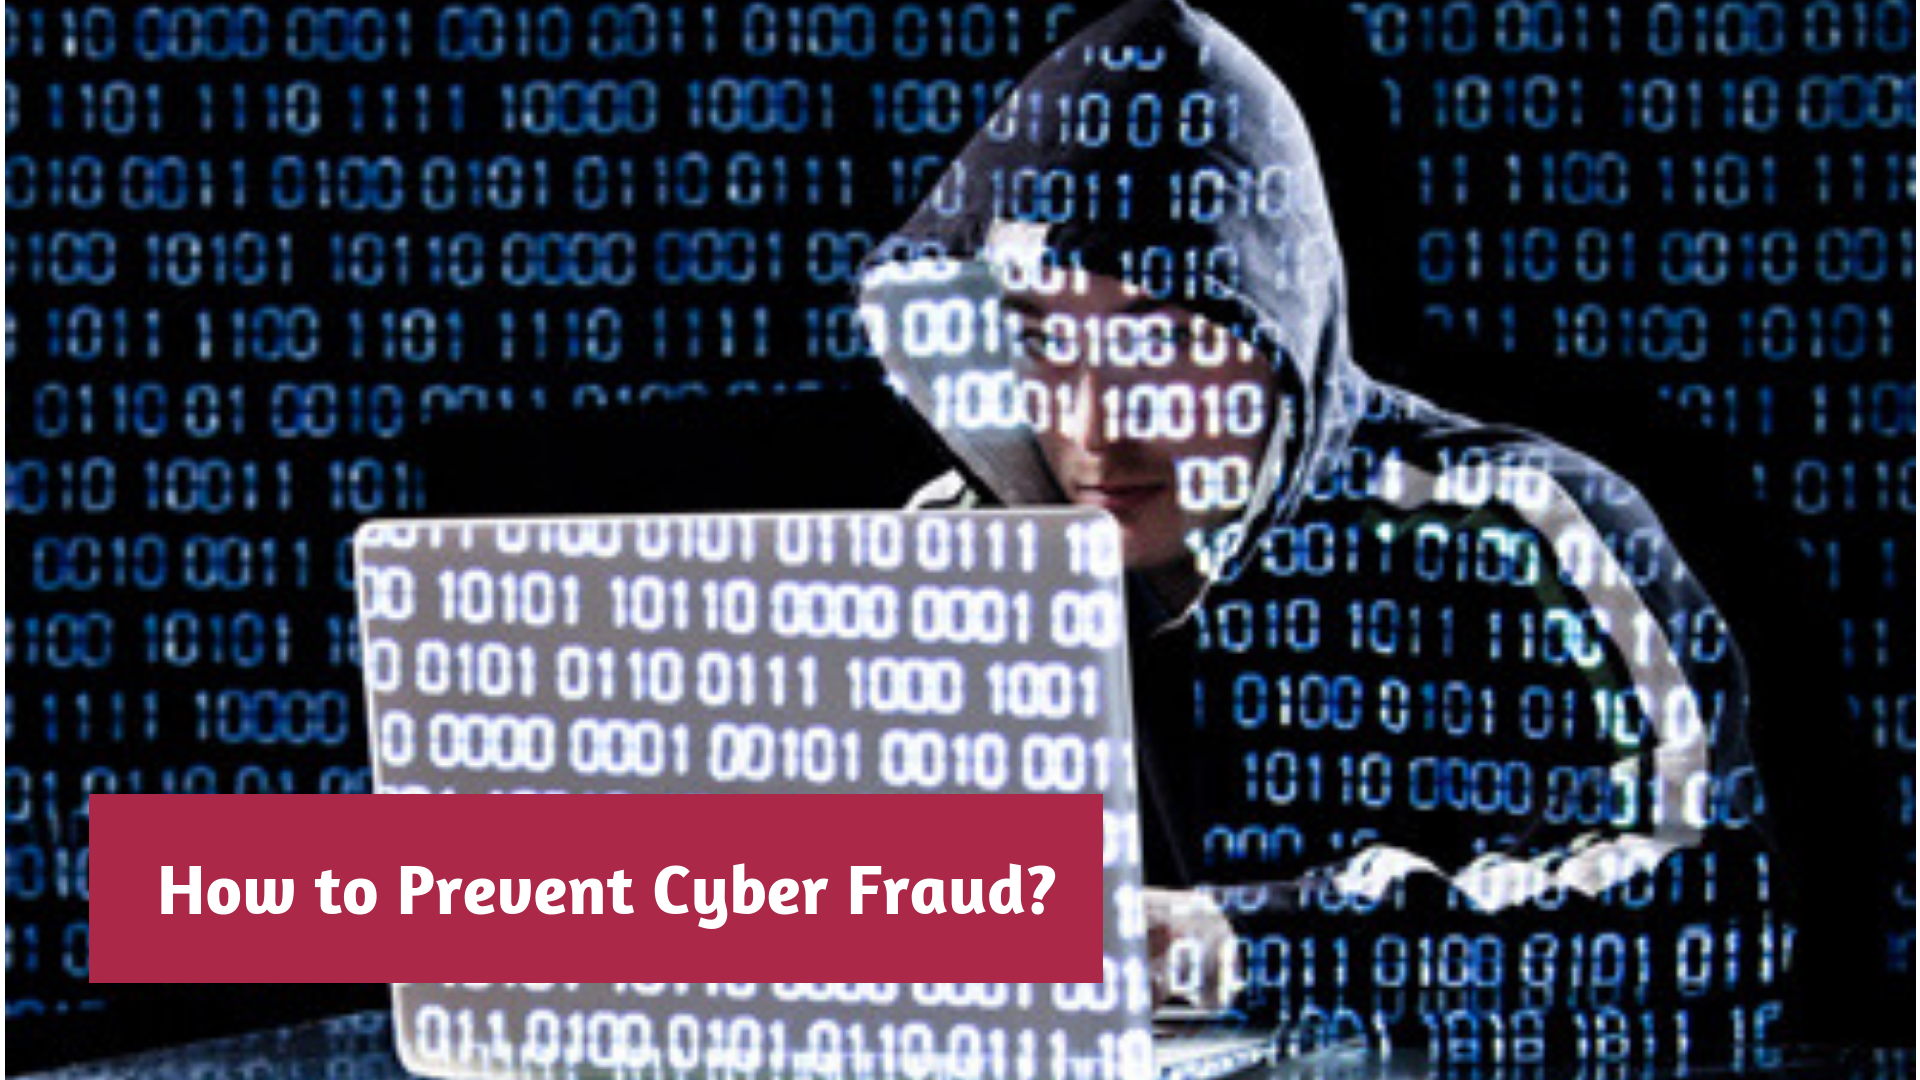 How to Prevent Cyber Fraud?